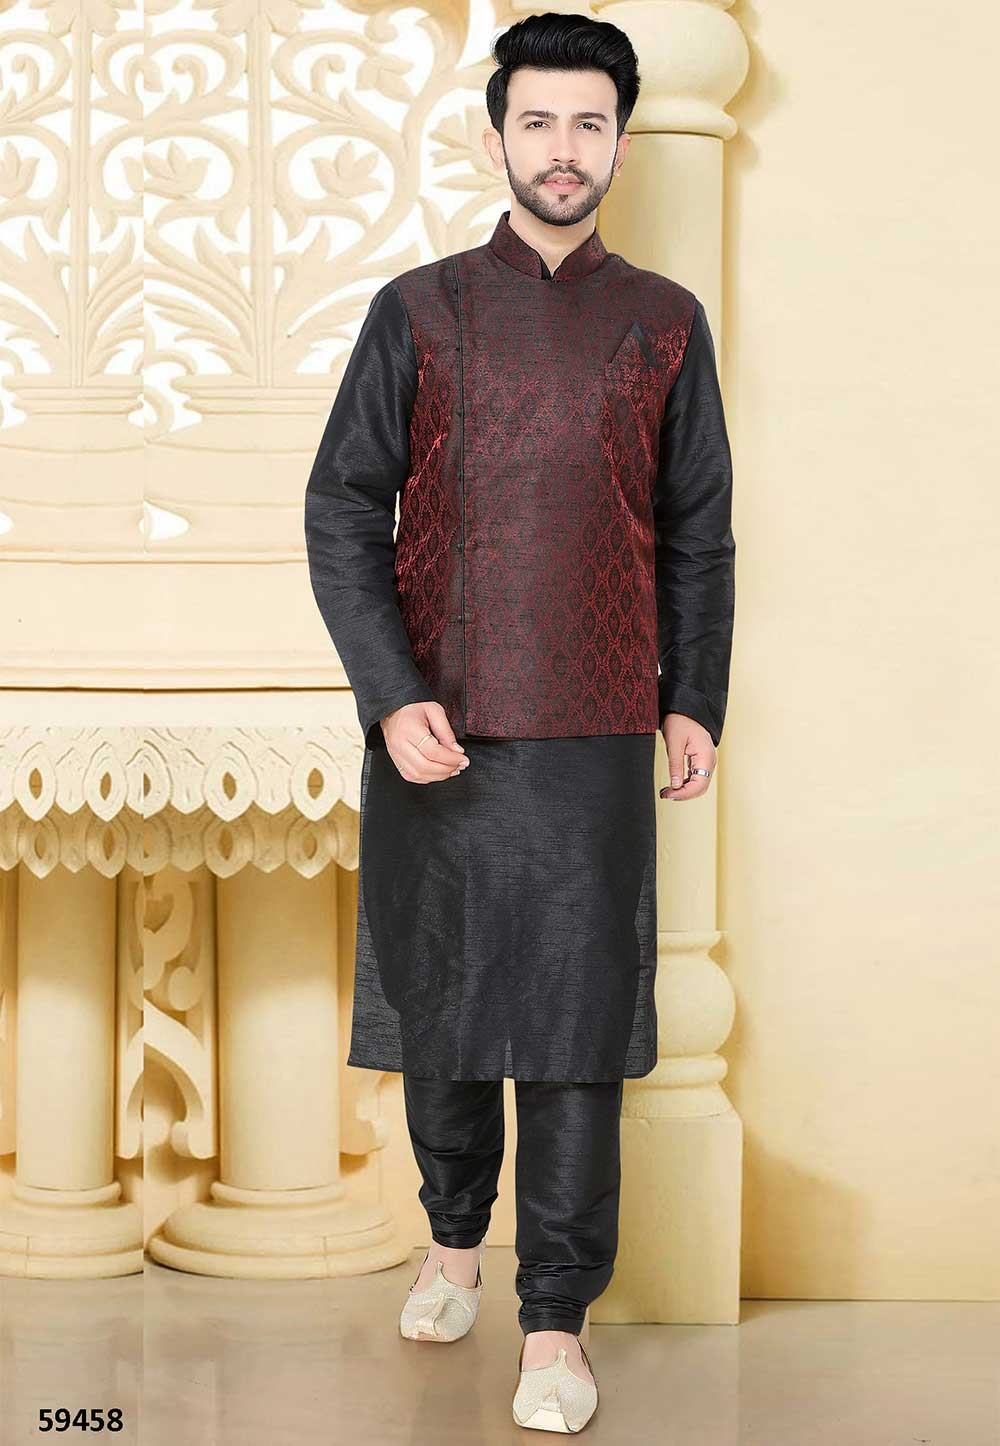 Buy designer kurta pajama in black, maroon